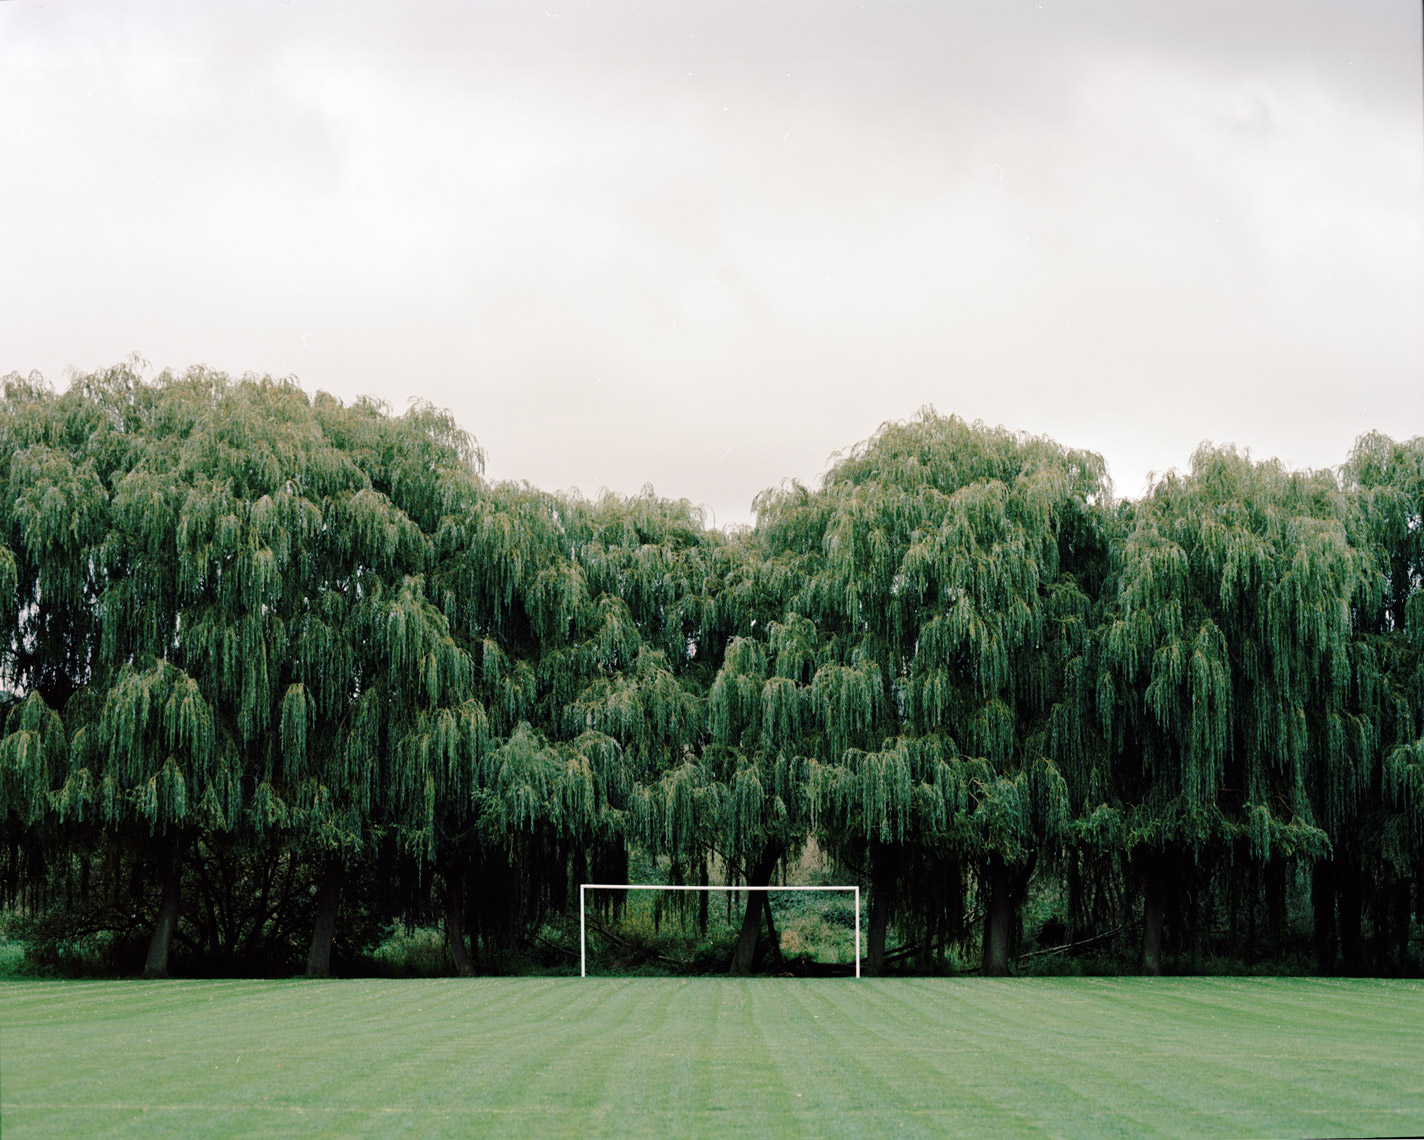 Goal Posts, Berkhamsted, England